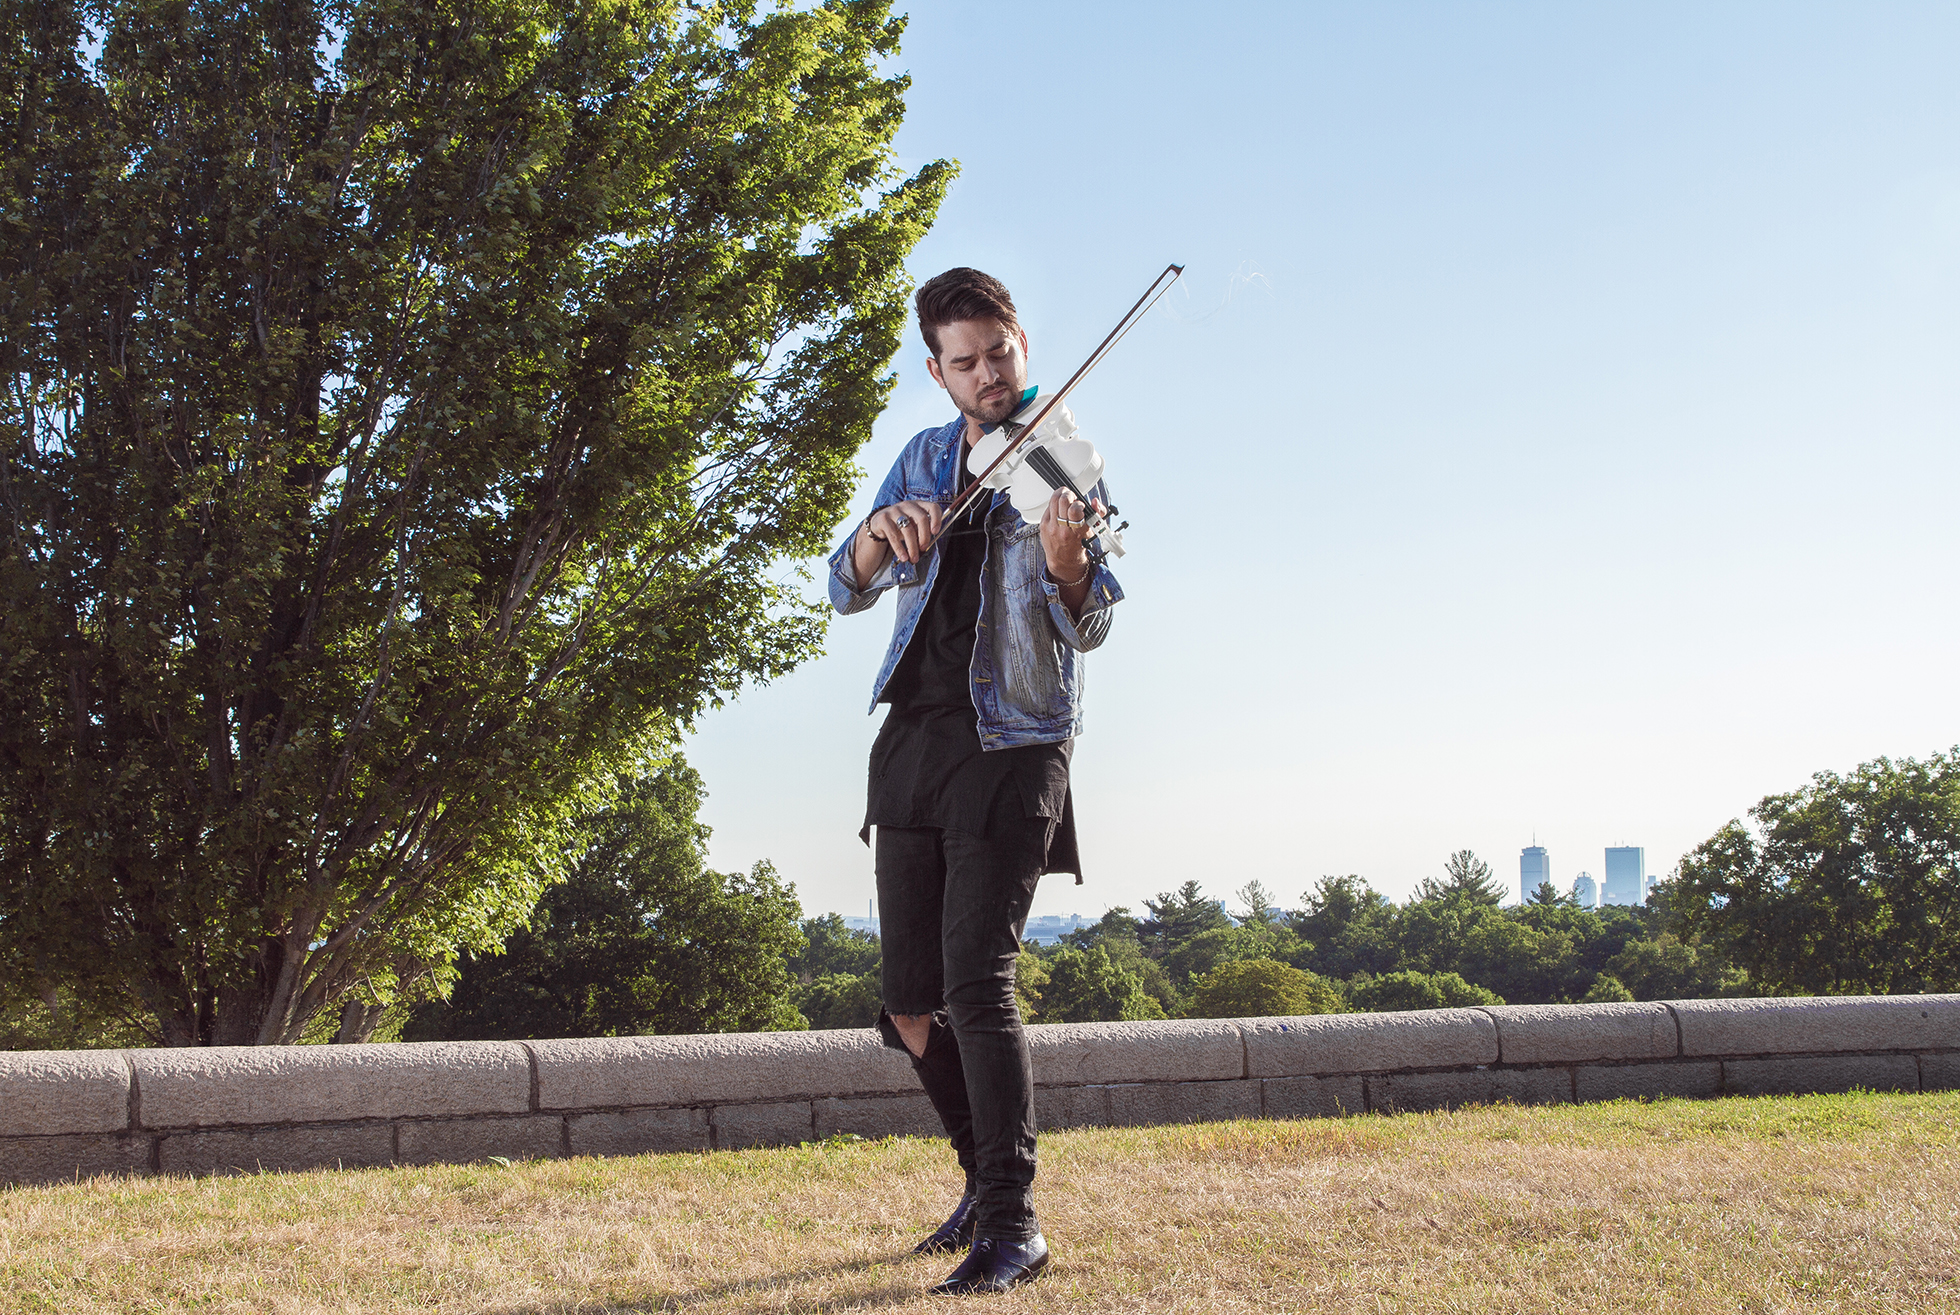 Rhett Price playing Formlabs' 3D-printed violin